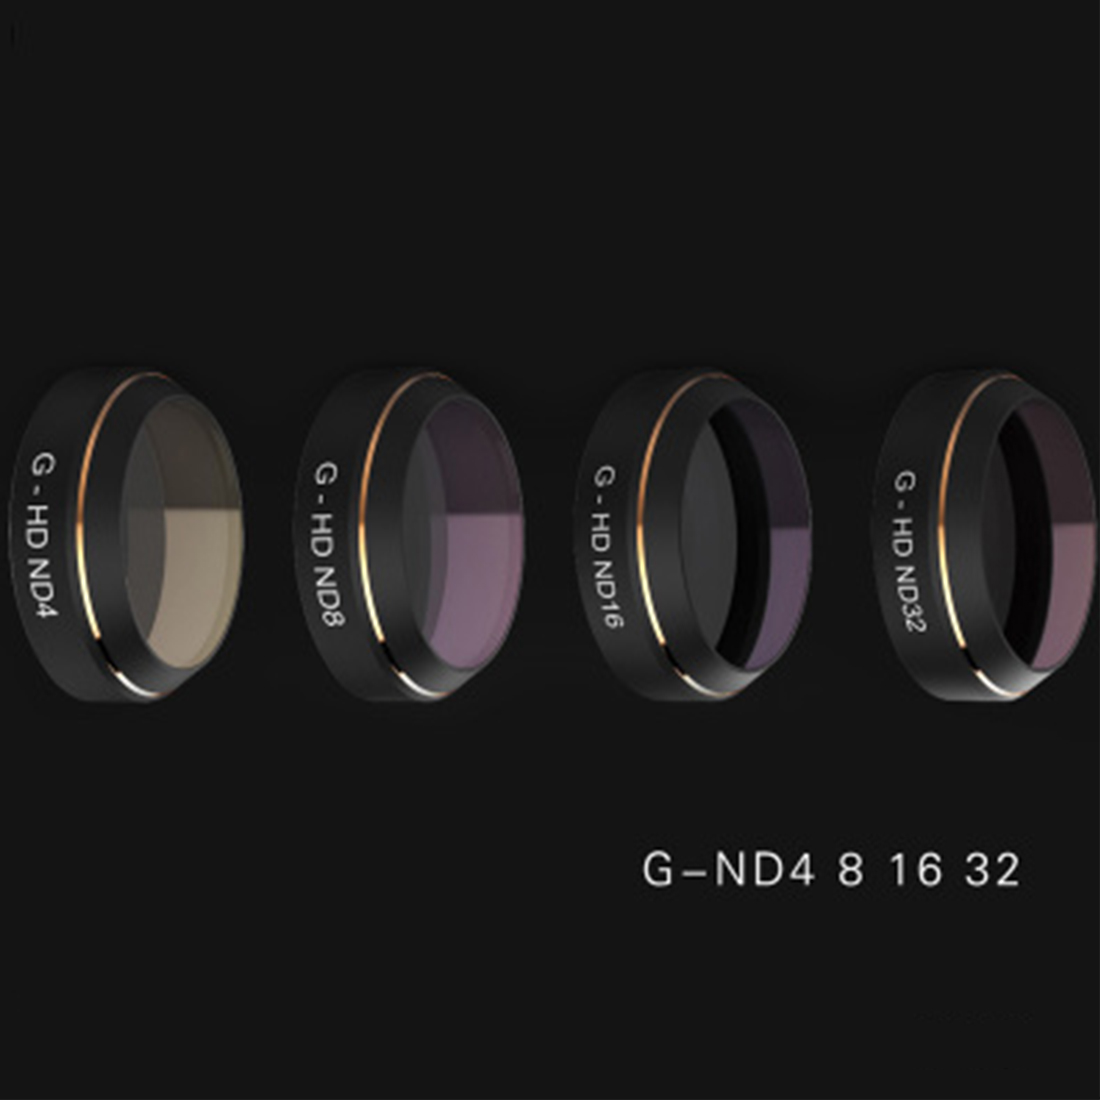 PGYTECH ND4 ND8 ND16 ND32  Gimbal Lens Filter Set Accessories for DJI Mavic Pro Drone  Quadcopter Parts simranjeet kaur amaninder singh and pranav gupta surface properties of dental materials under simulated tooth wear